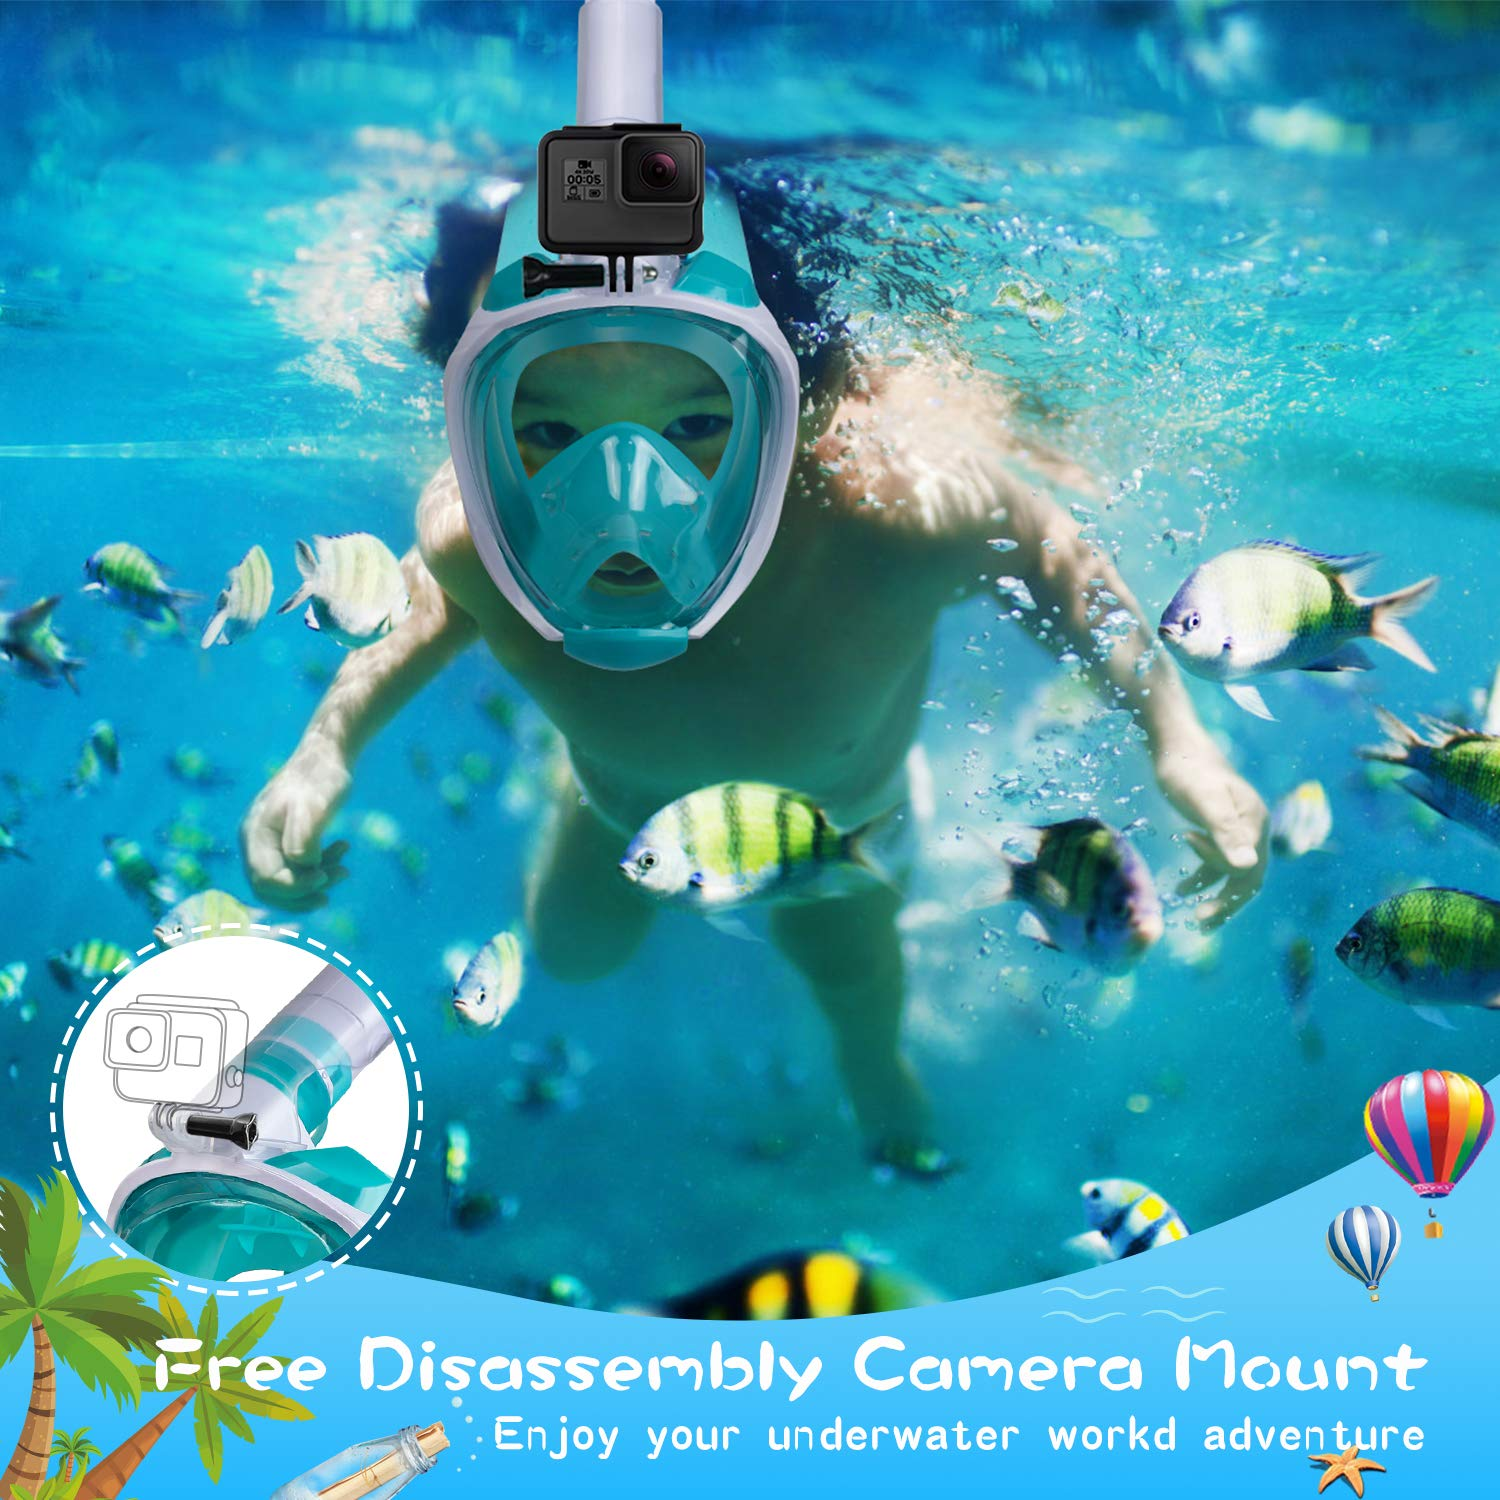 Dry Top Set Anti-Fog Anti-Leak Snorkeling Mask with Detachable Camera Mount OUSPT Full Face Snorkel Mask Panoramic 180/° View Upgraded Dive Mask with Safety Breathing System